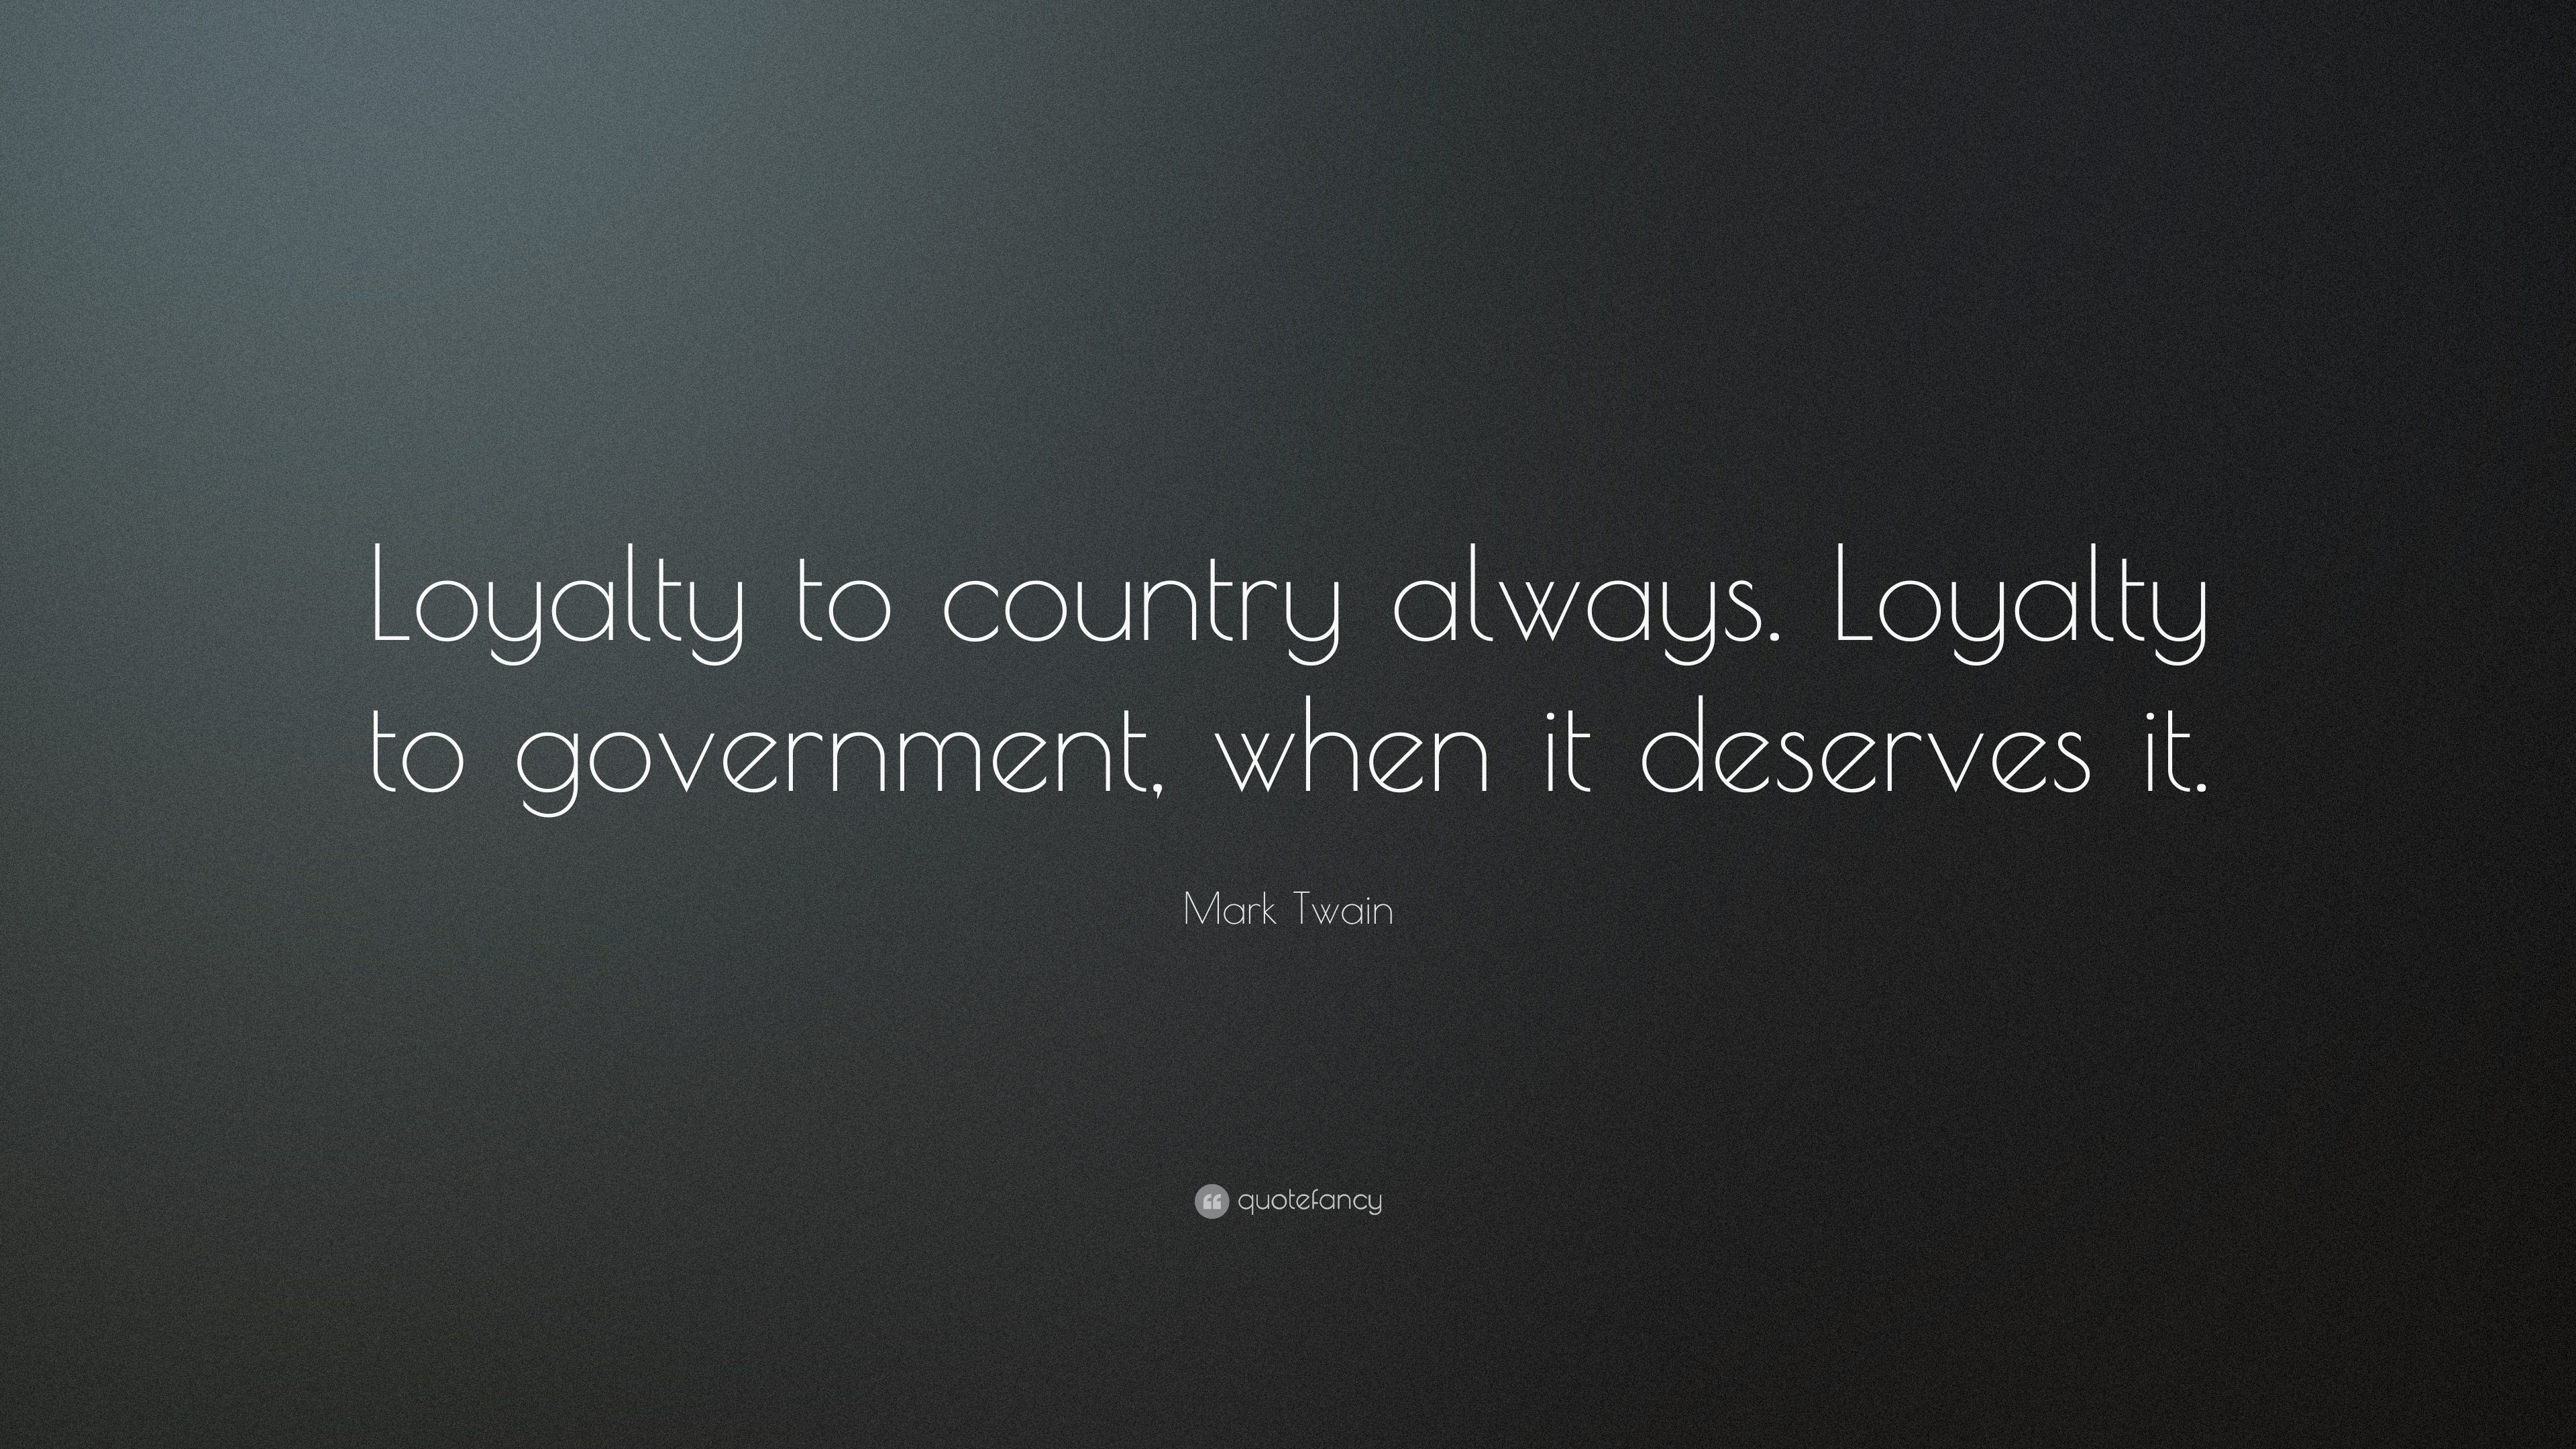 Designs quotes about loyalty quotes about loyalty quotes about loyalty - Mark Twain Quote Loyalty To Country Always Loyalty To Government When It